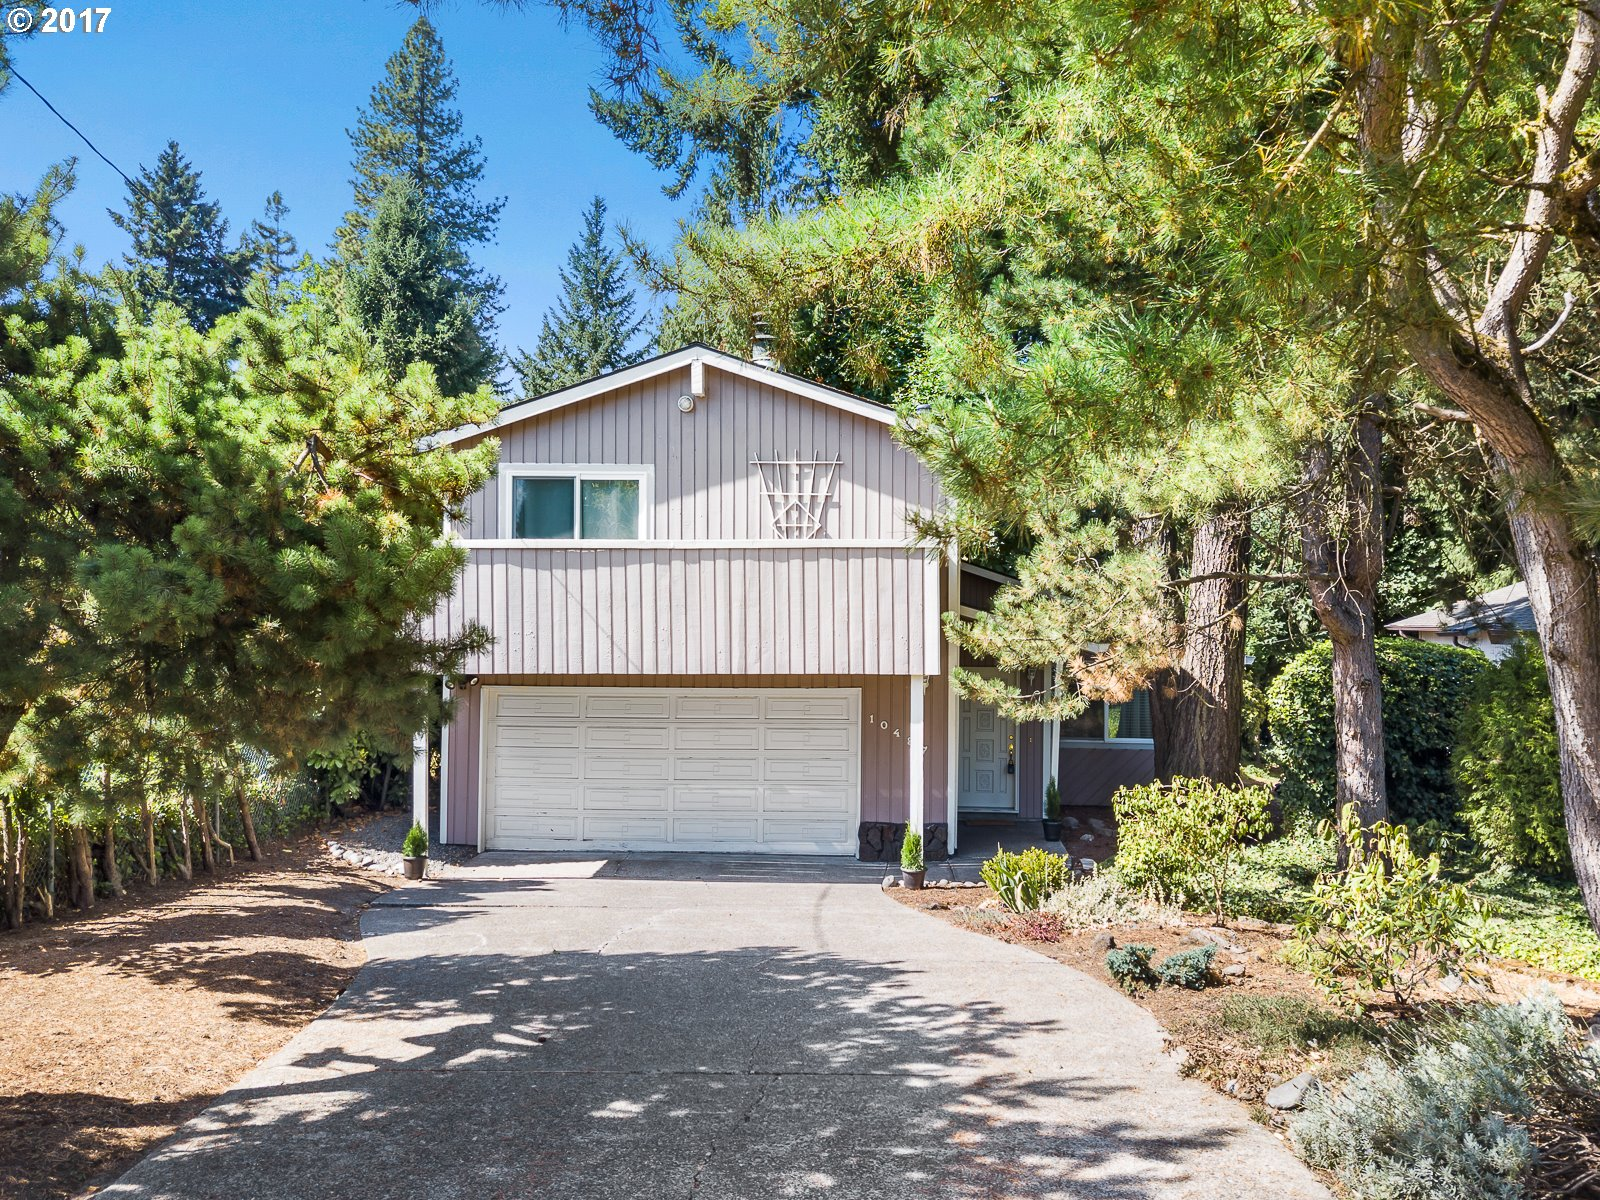 10487 SE 52ND AVE, Milwaukie, OR 97222